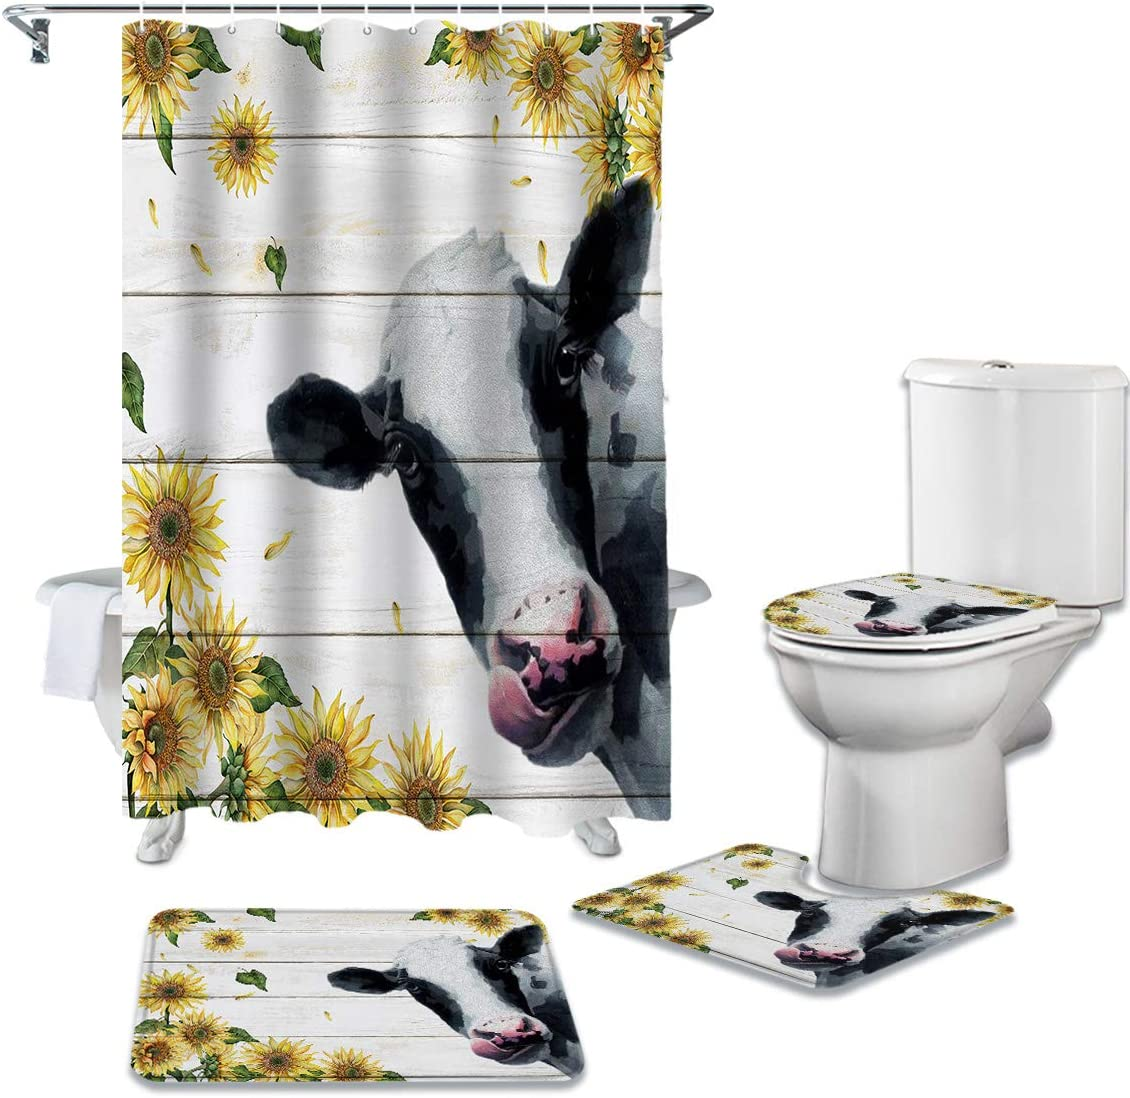 ZL New arrival Home 4 Piece Bathroom Set Animal Waterproof Country Show Cow Selling and selling